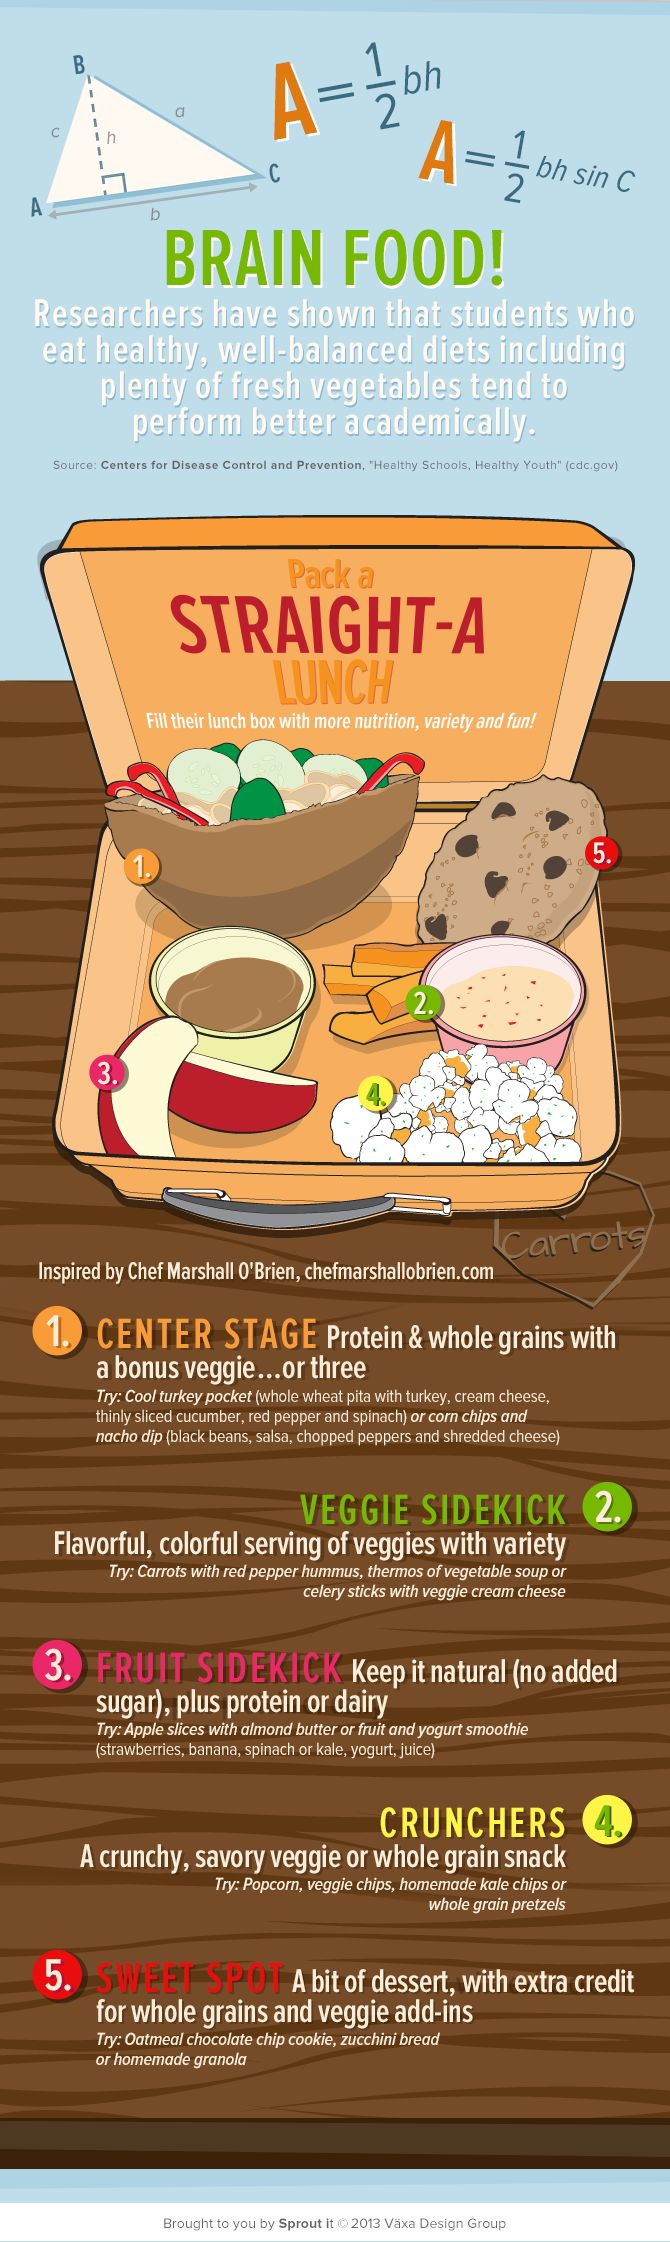 Brain Food - Pakc a Straight-A Lunch   Quick tips on how to pack a healthy school lunch